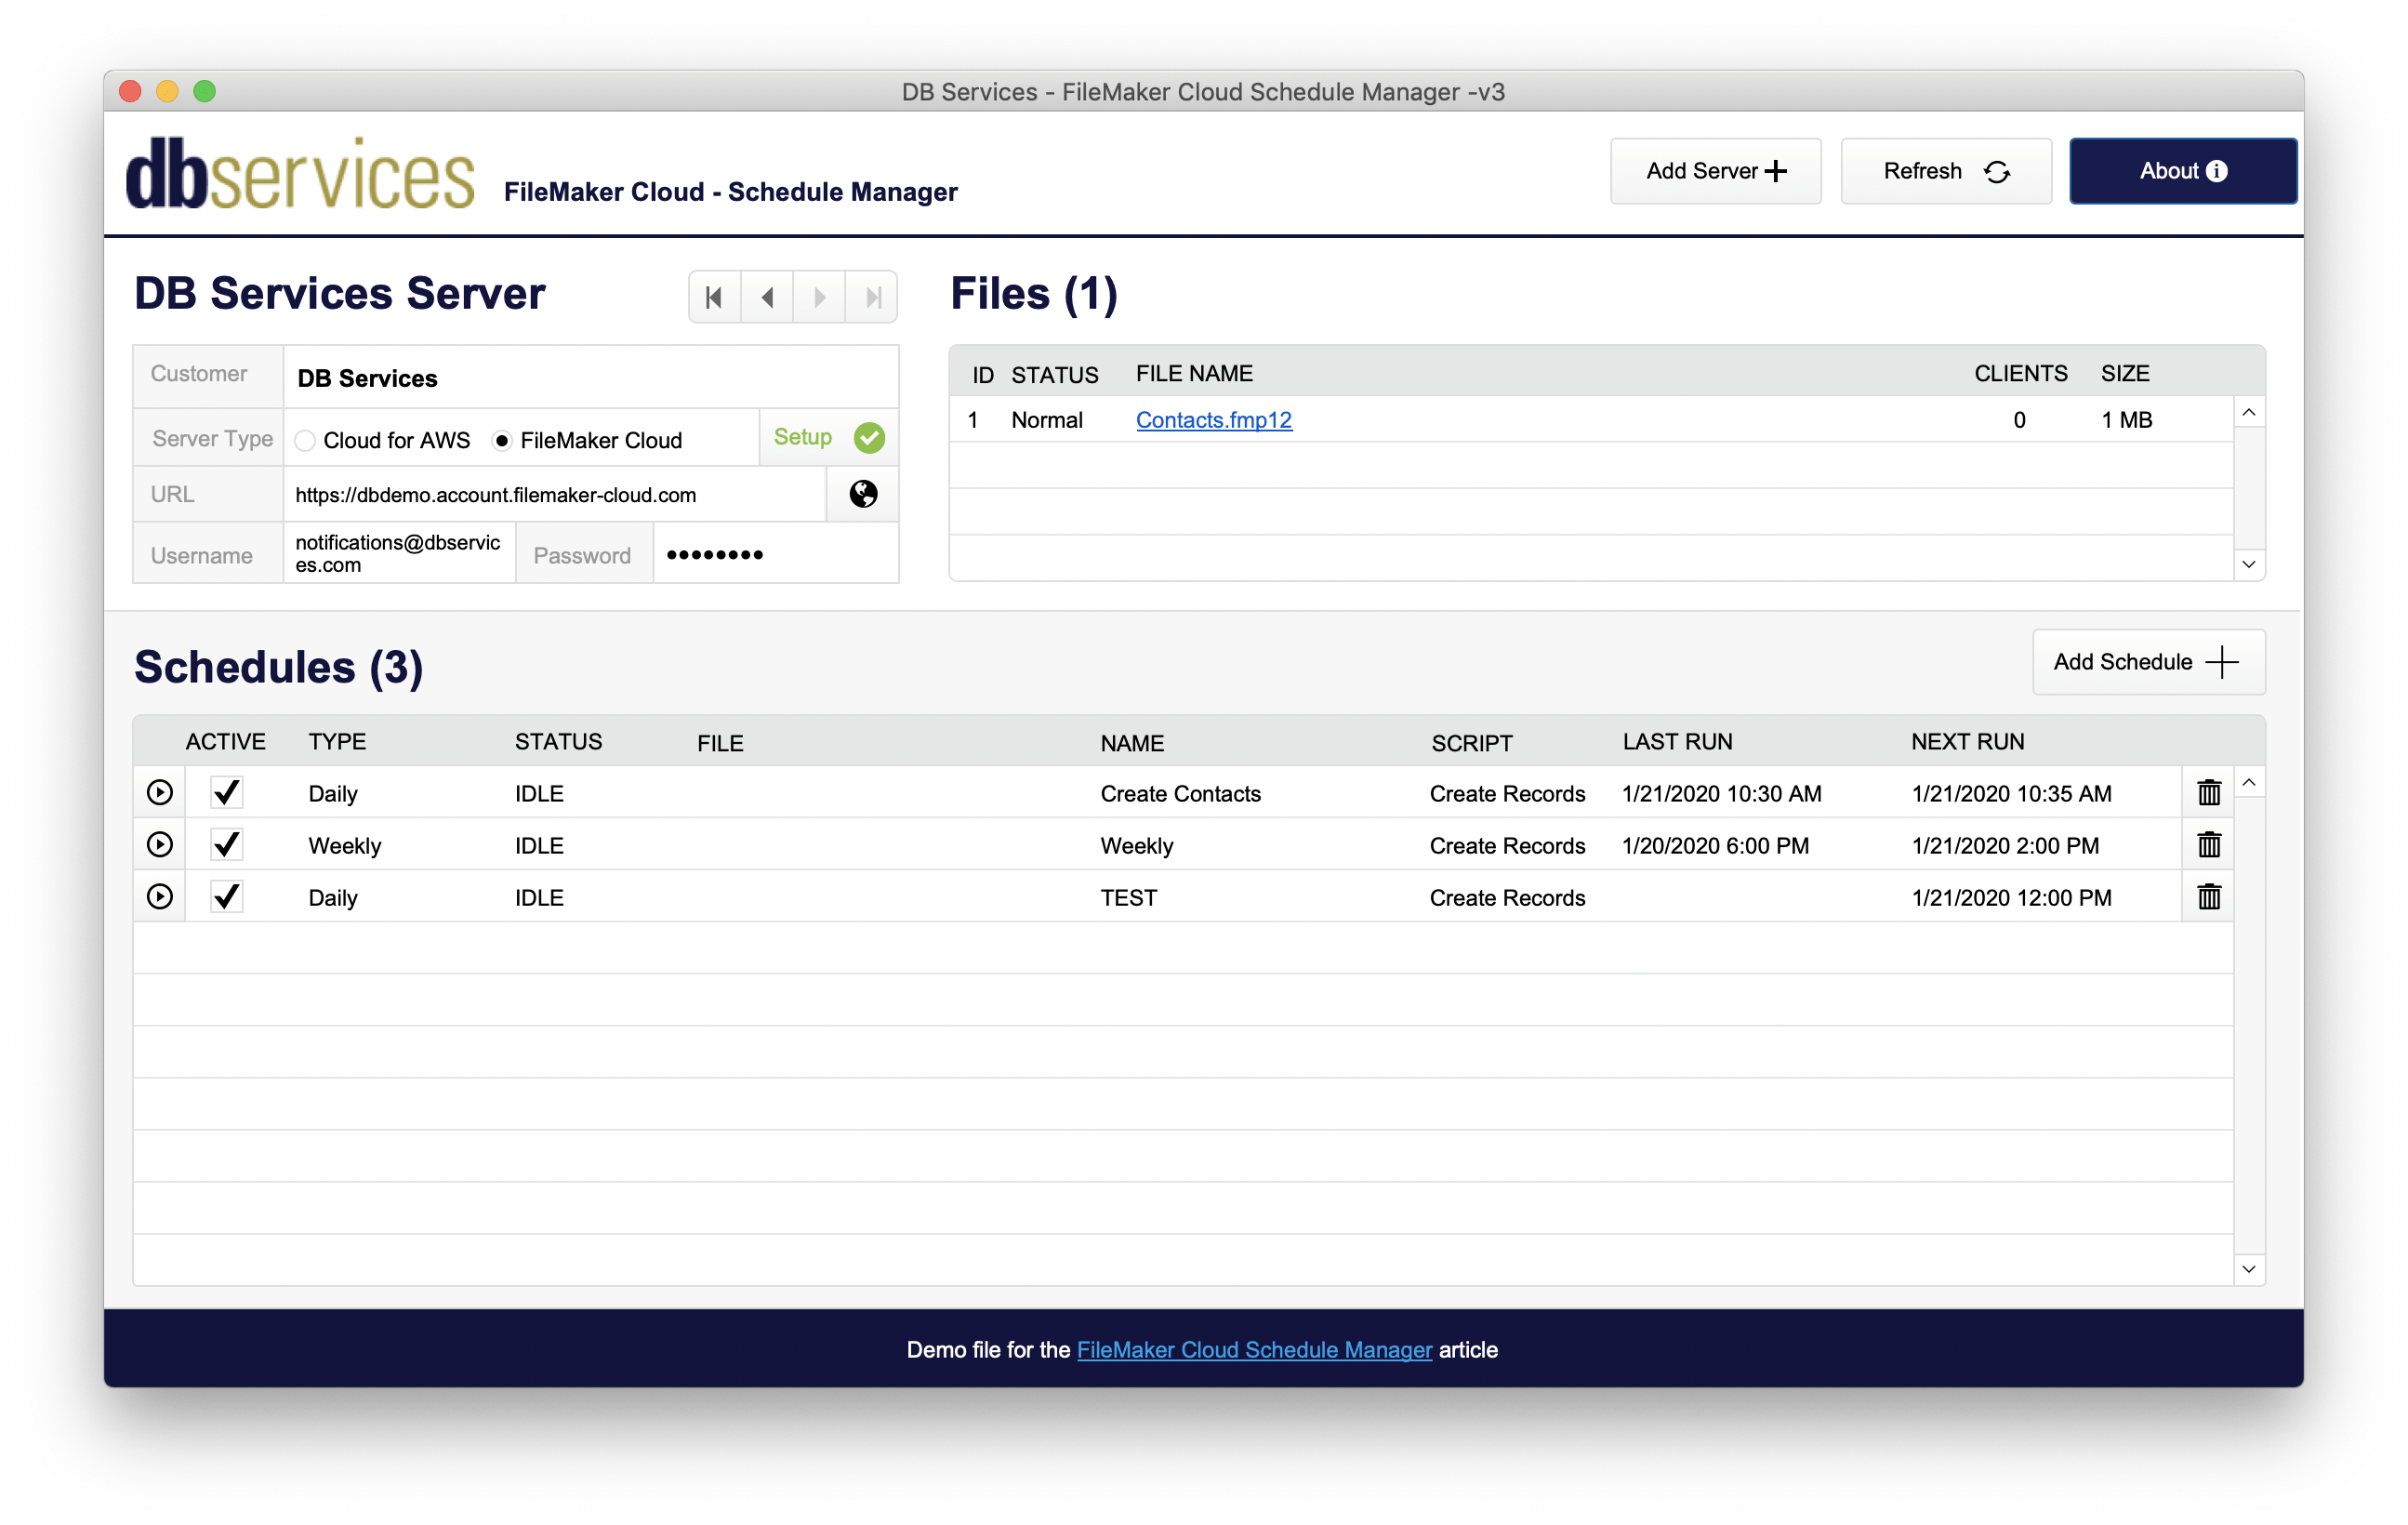 the dashboard of the schedule manager displaying a list of all files and schedules